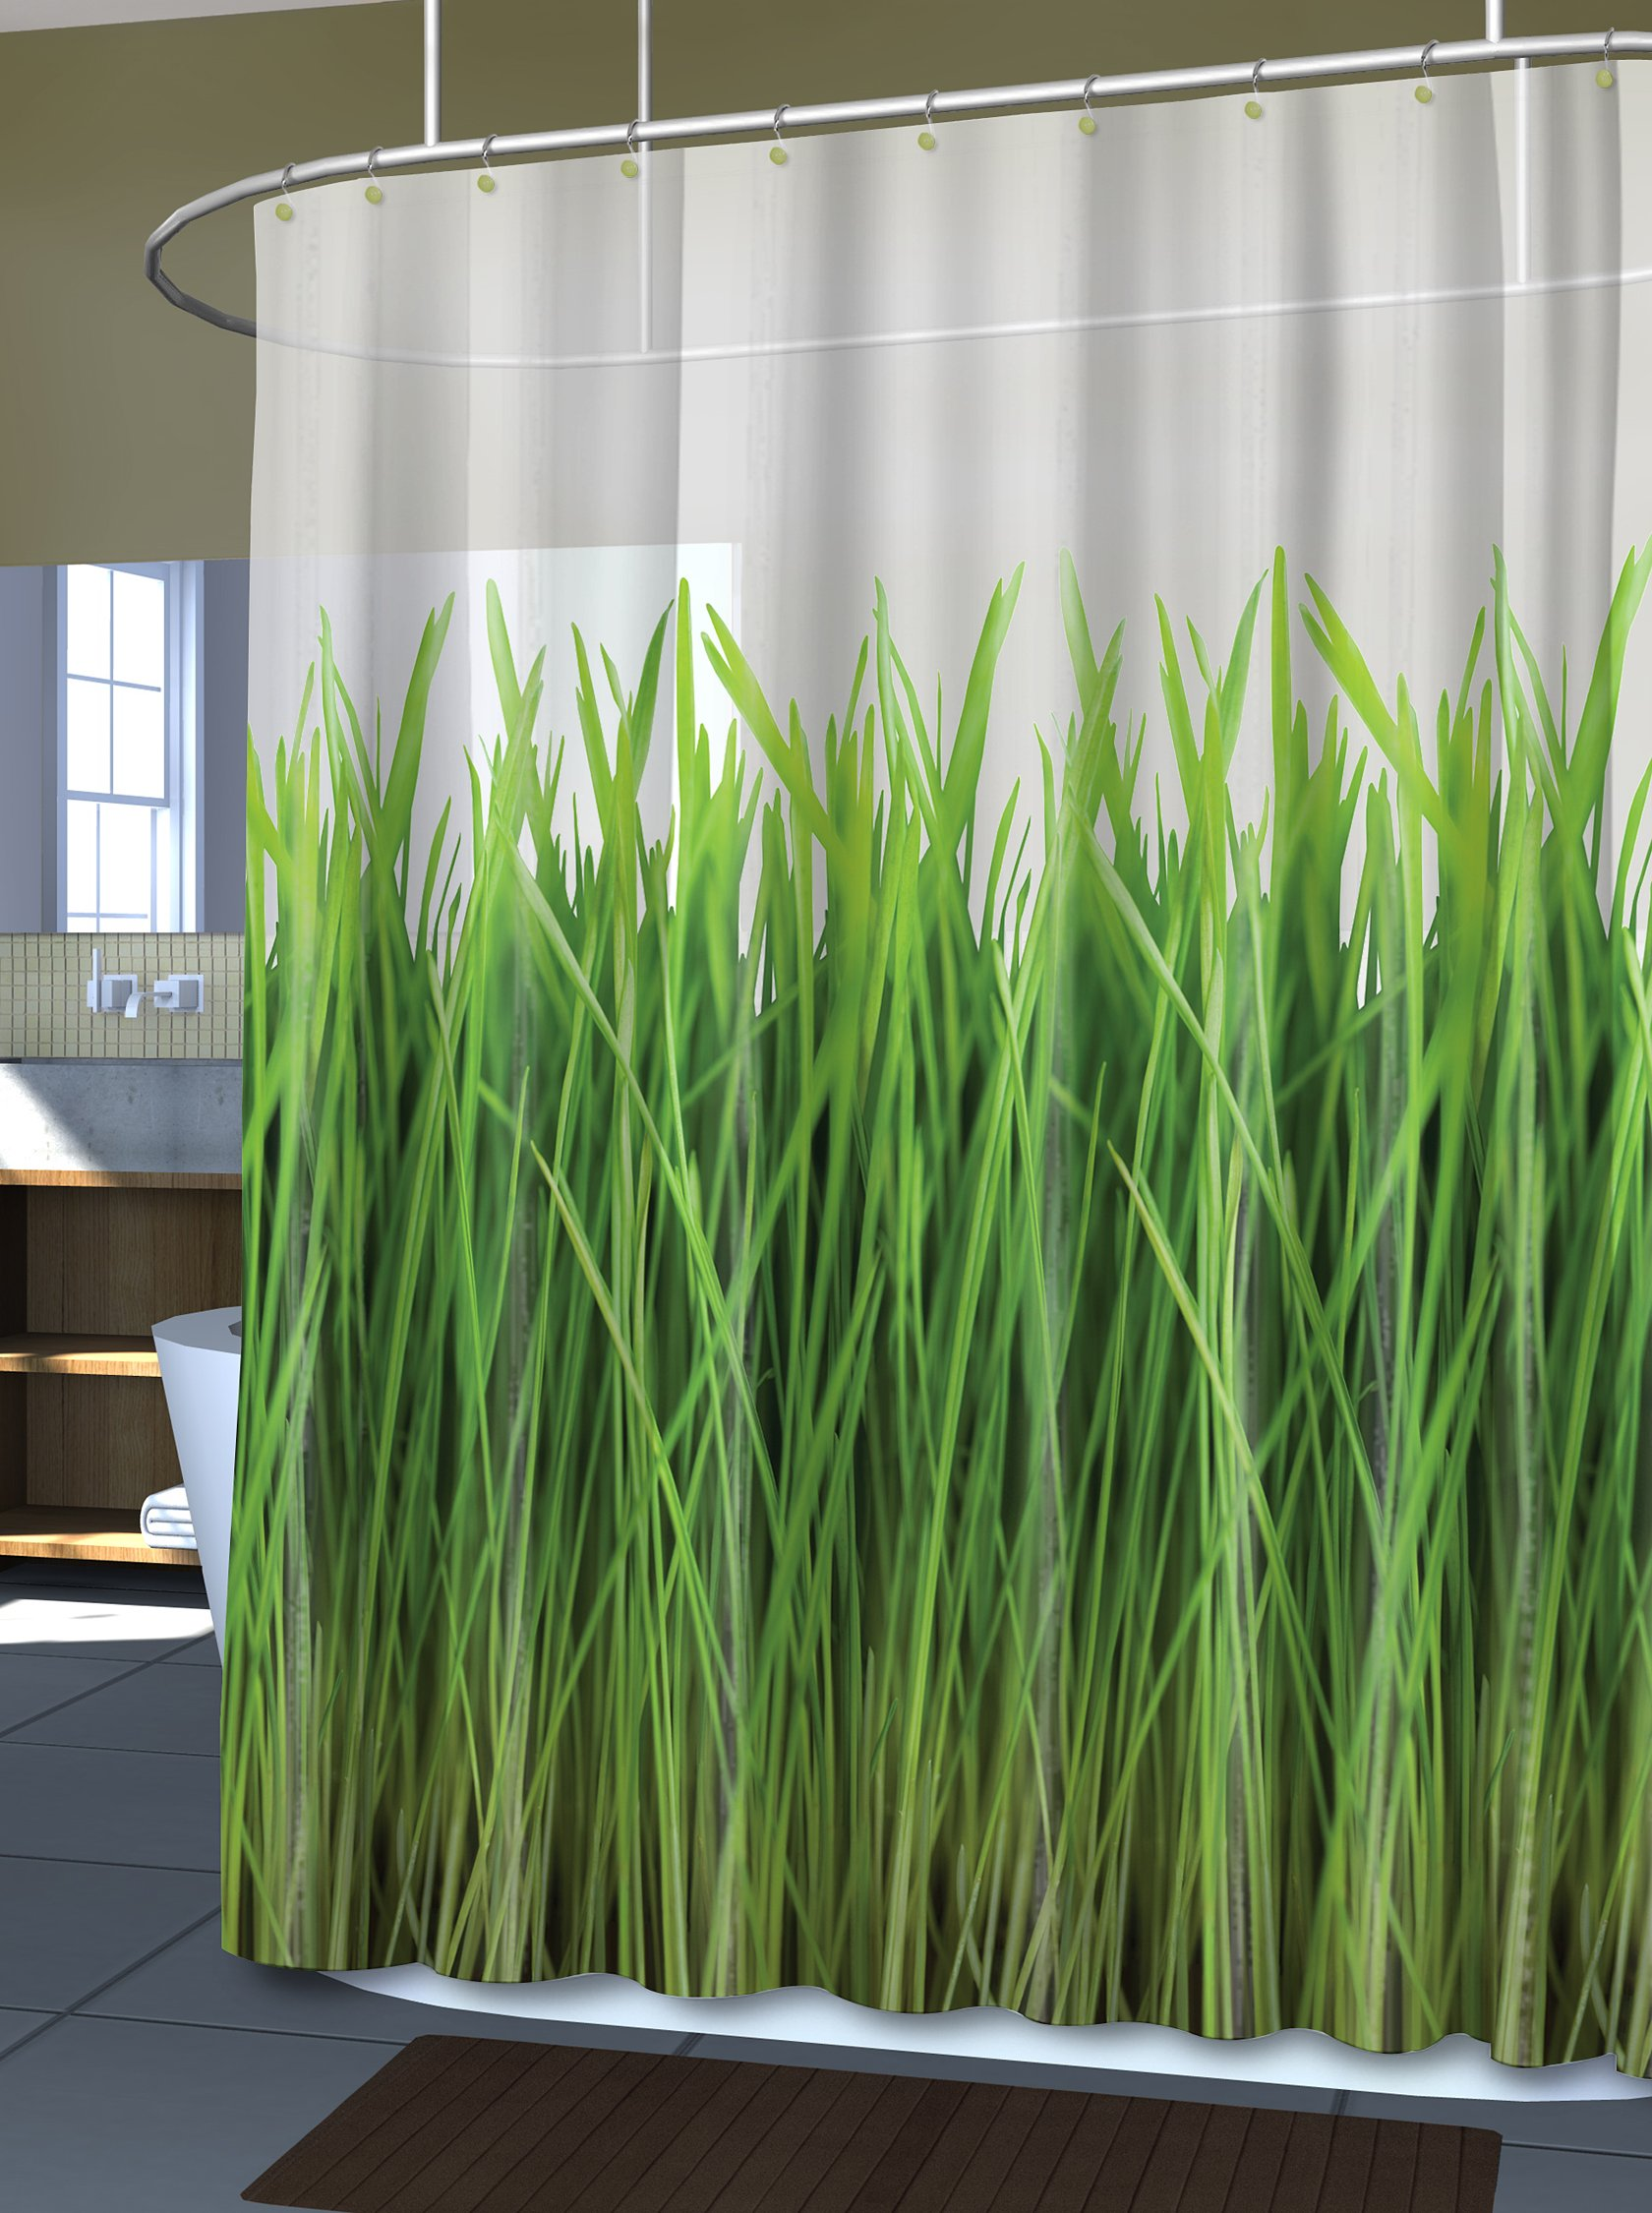 Splash Home 462456 EVA 5G Curtain Liner Design for Bathroom Shower and Bathtubs-Free of PVC Chlorine and Chemical Smell-Non-Toxic and Eco-Friendly-100% Waterproof-Grass Green